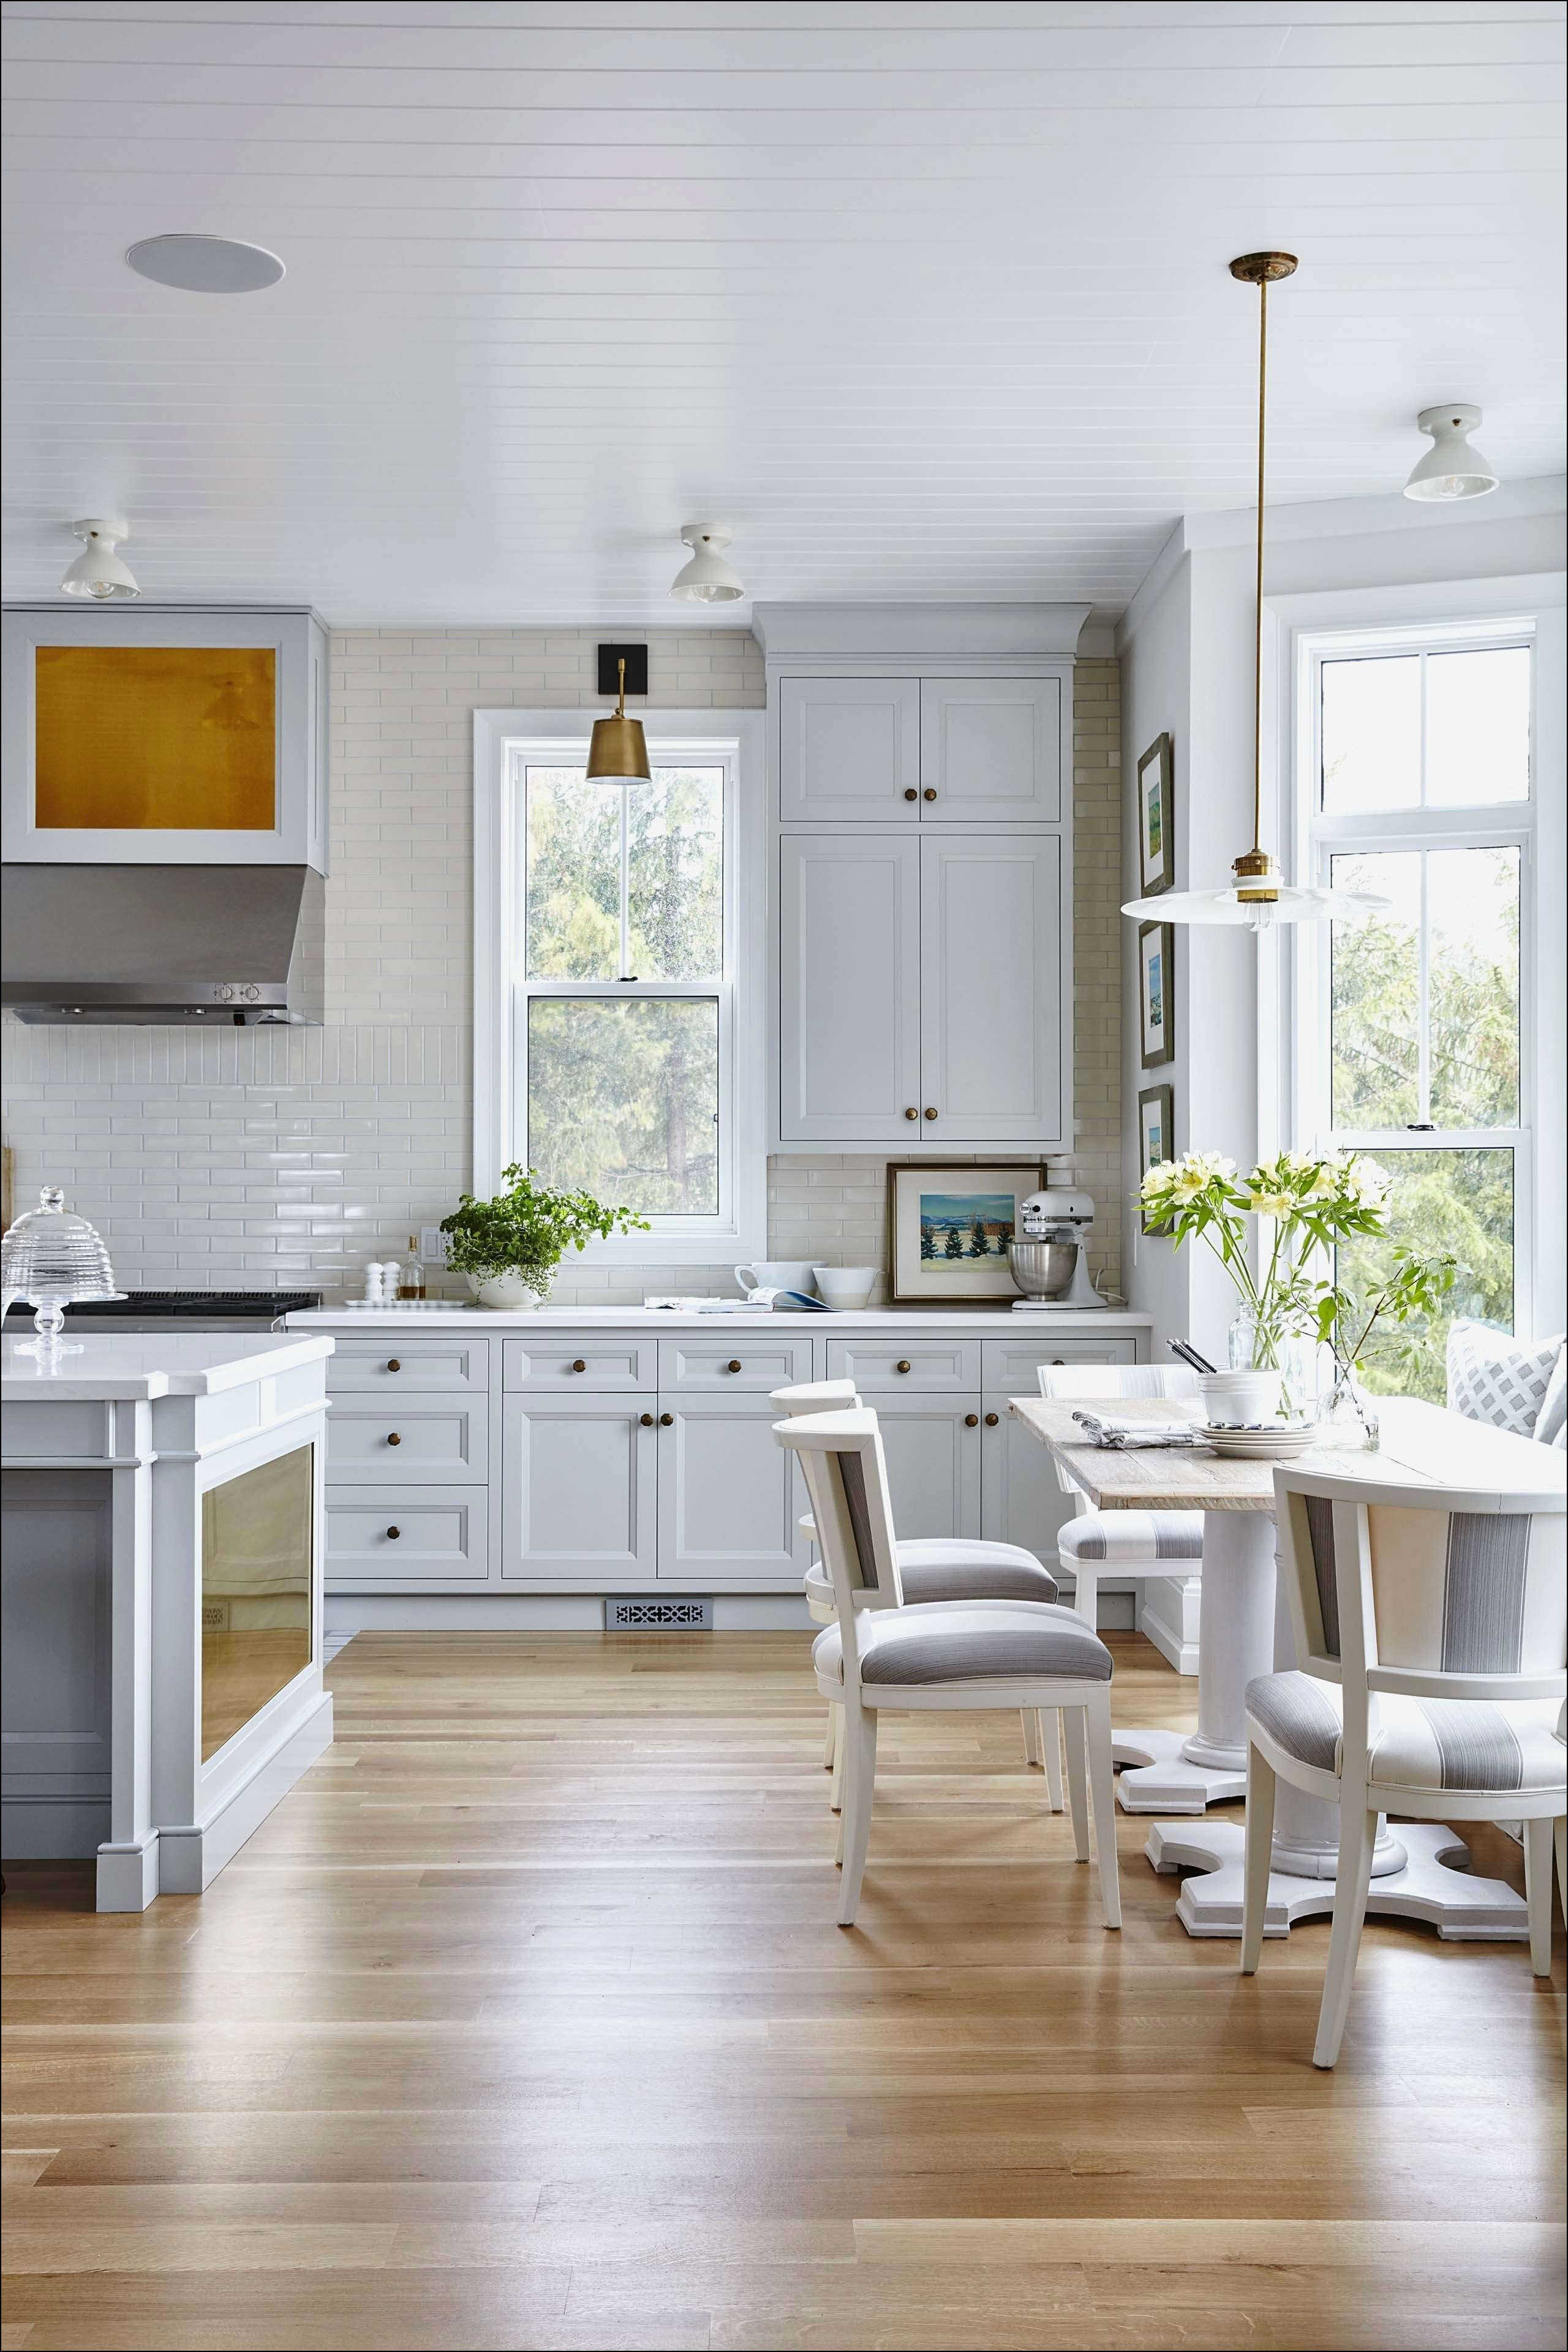 hardwood floor transition from room to hallway of what is flooring ideas regarding what is the highest quality laminate flooring stock kitchen joys kitchen joys kitchen 0d kitchens